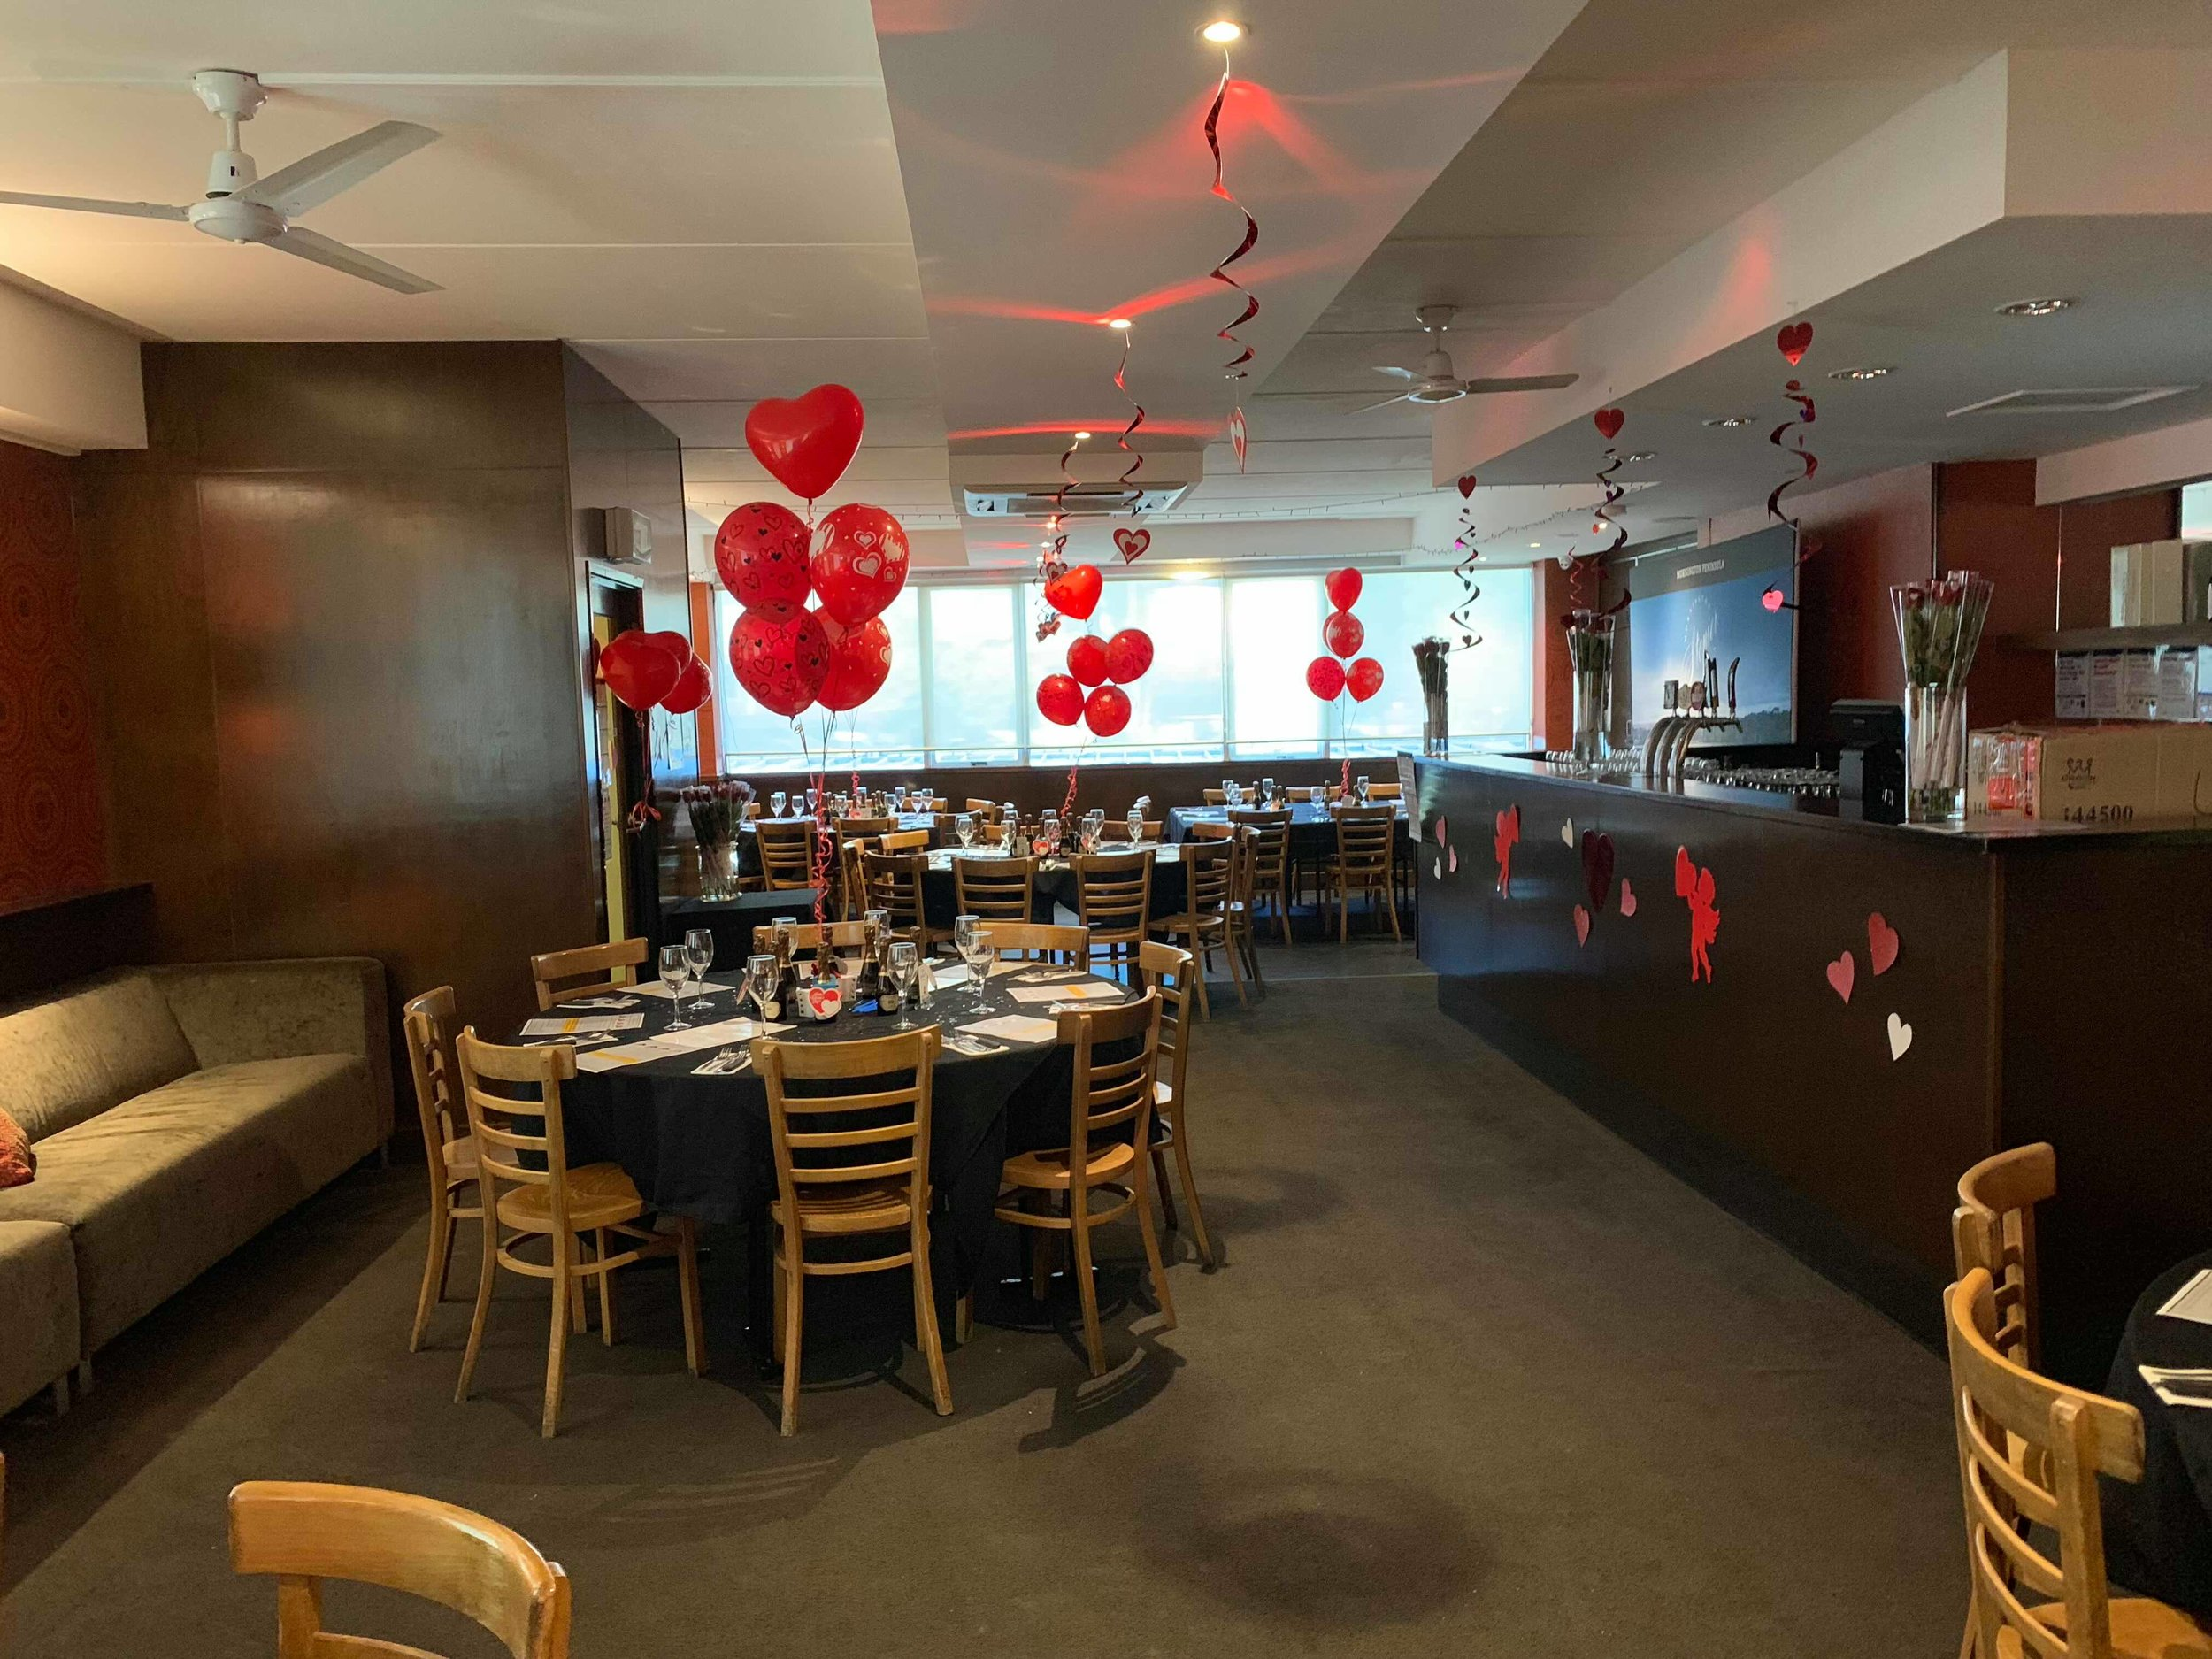 Look into our Function - If you have been thinking about a special event such as a birthday, engagement party, sit down lunch/dinner have a look at our function information below to find out more about how we can provide you with the best event possible for your specific needs.